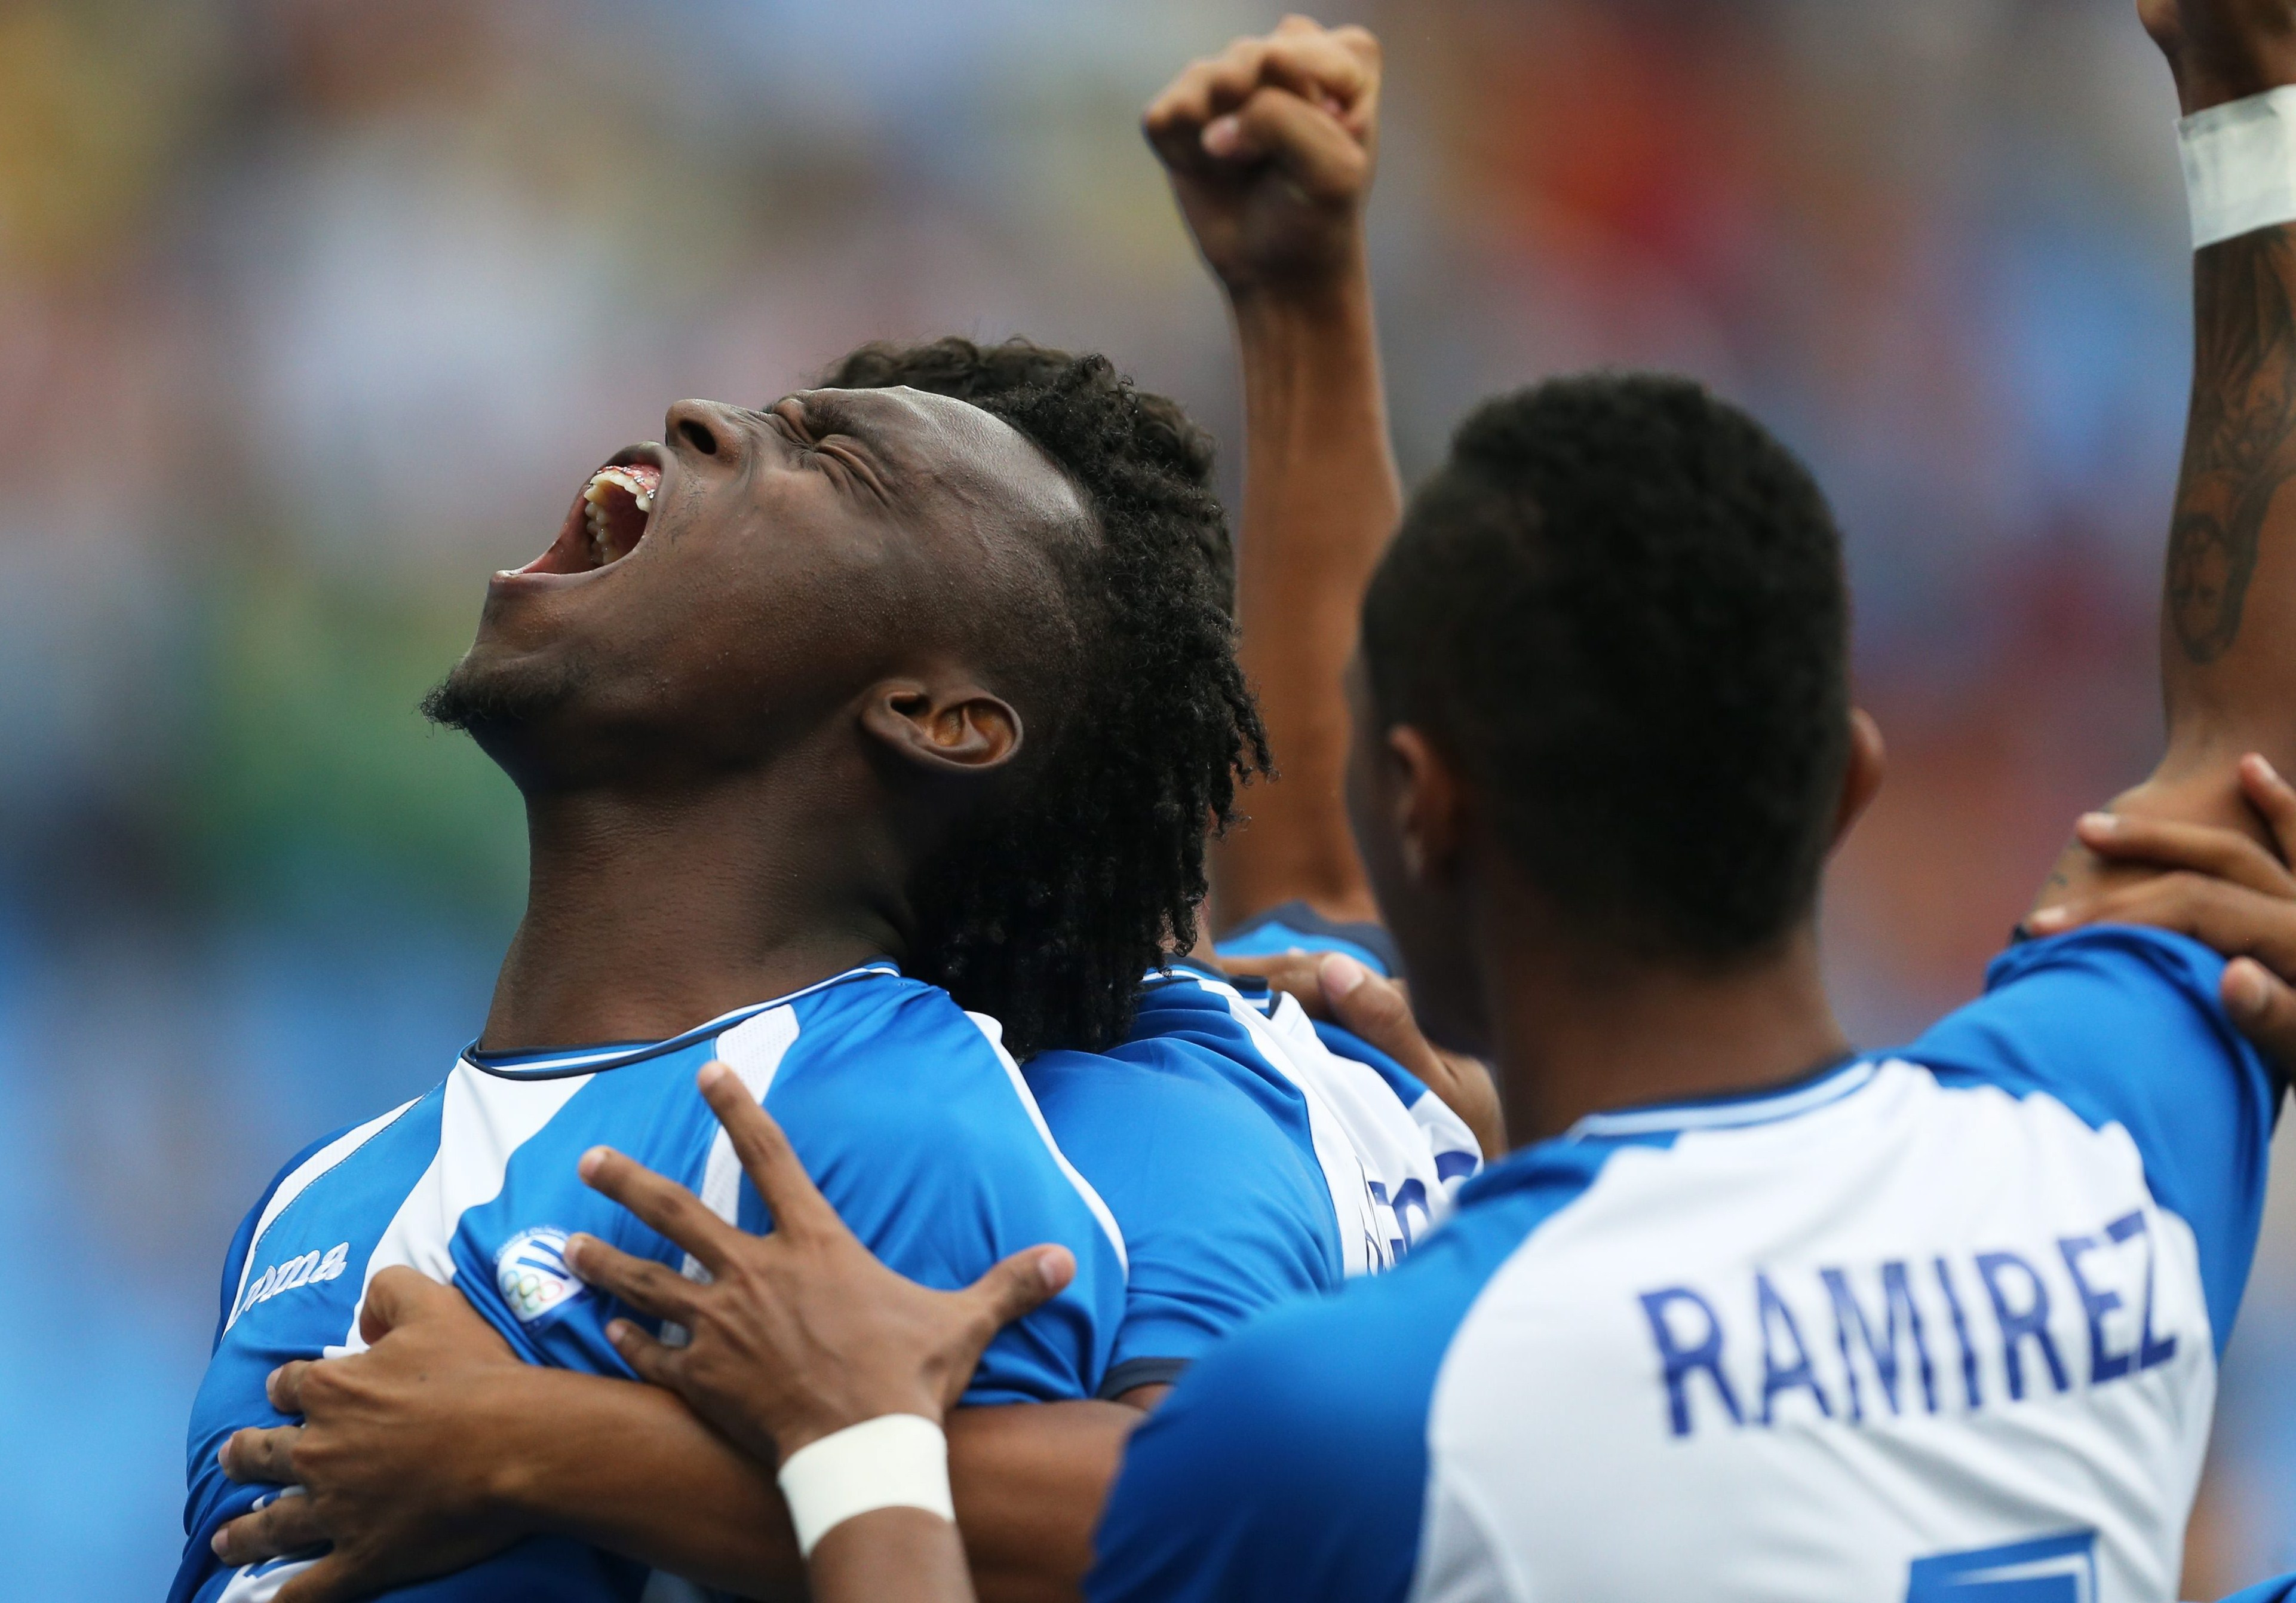 . Rio De Janeiro (Brazil), 07/08/2016.- Alberth Elis of Honduras celebrates his 1-0 goal during the men's preliminary round group D match between Honduras and Portugal of the Rio 2016 Olympic Games Soccer tournament at the Maracana Stadium in Rio de Janeiro, Brazil, 16 August 2016. (Brasil) EFE/EPA/ORESTIS PANAGIOTOU